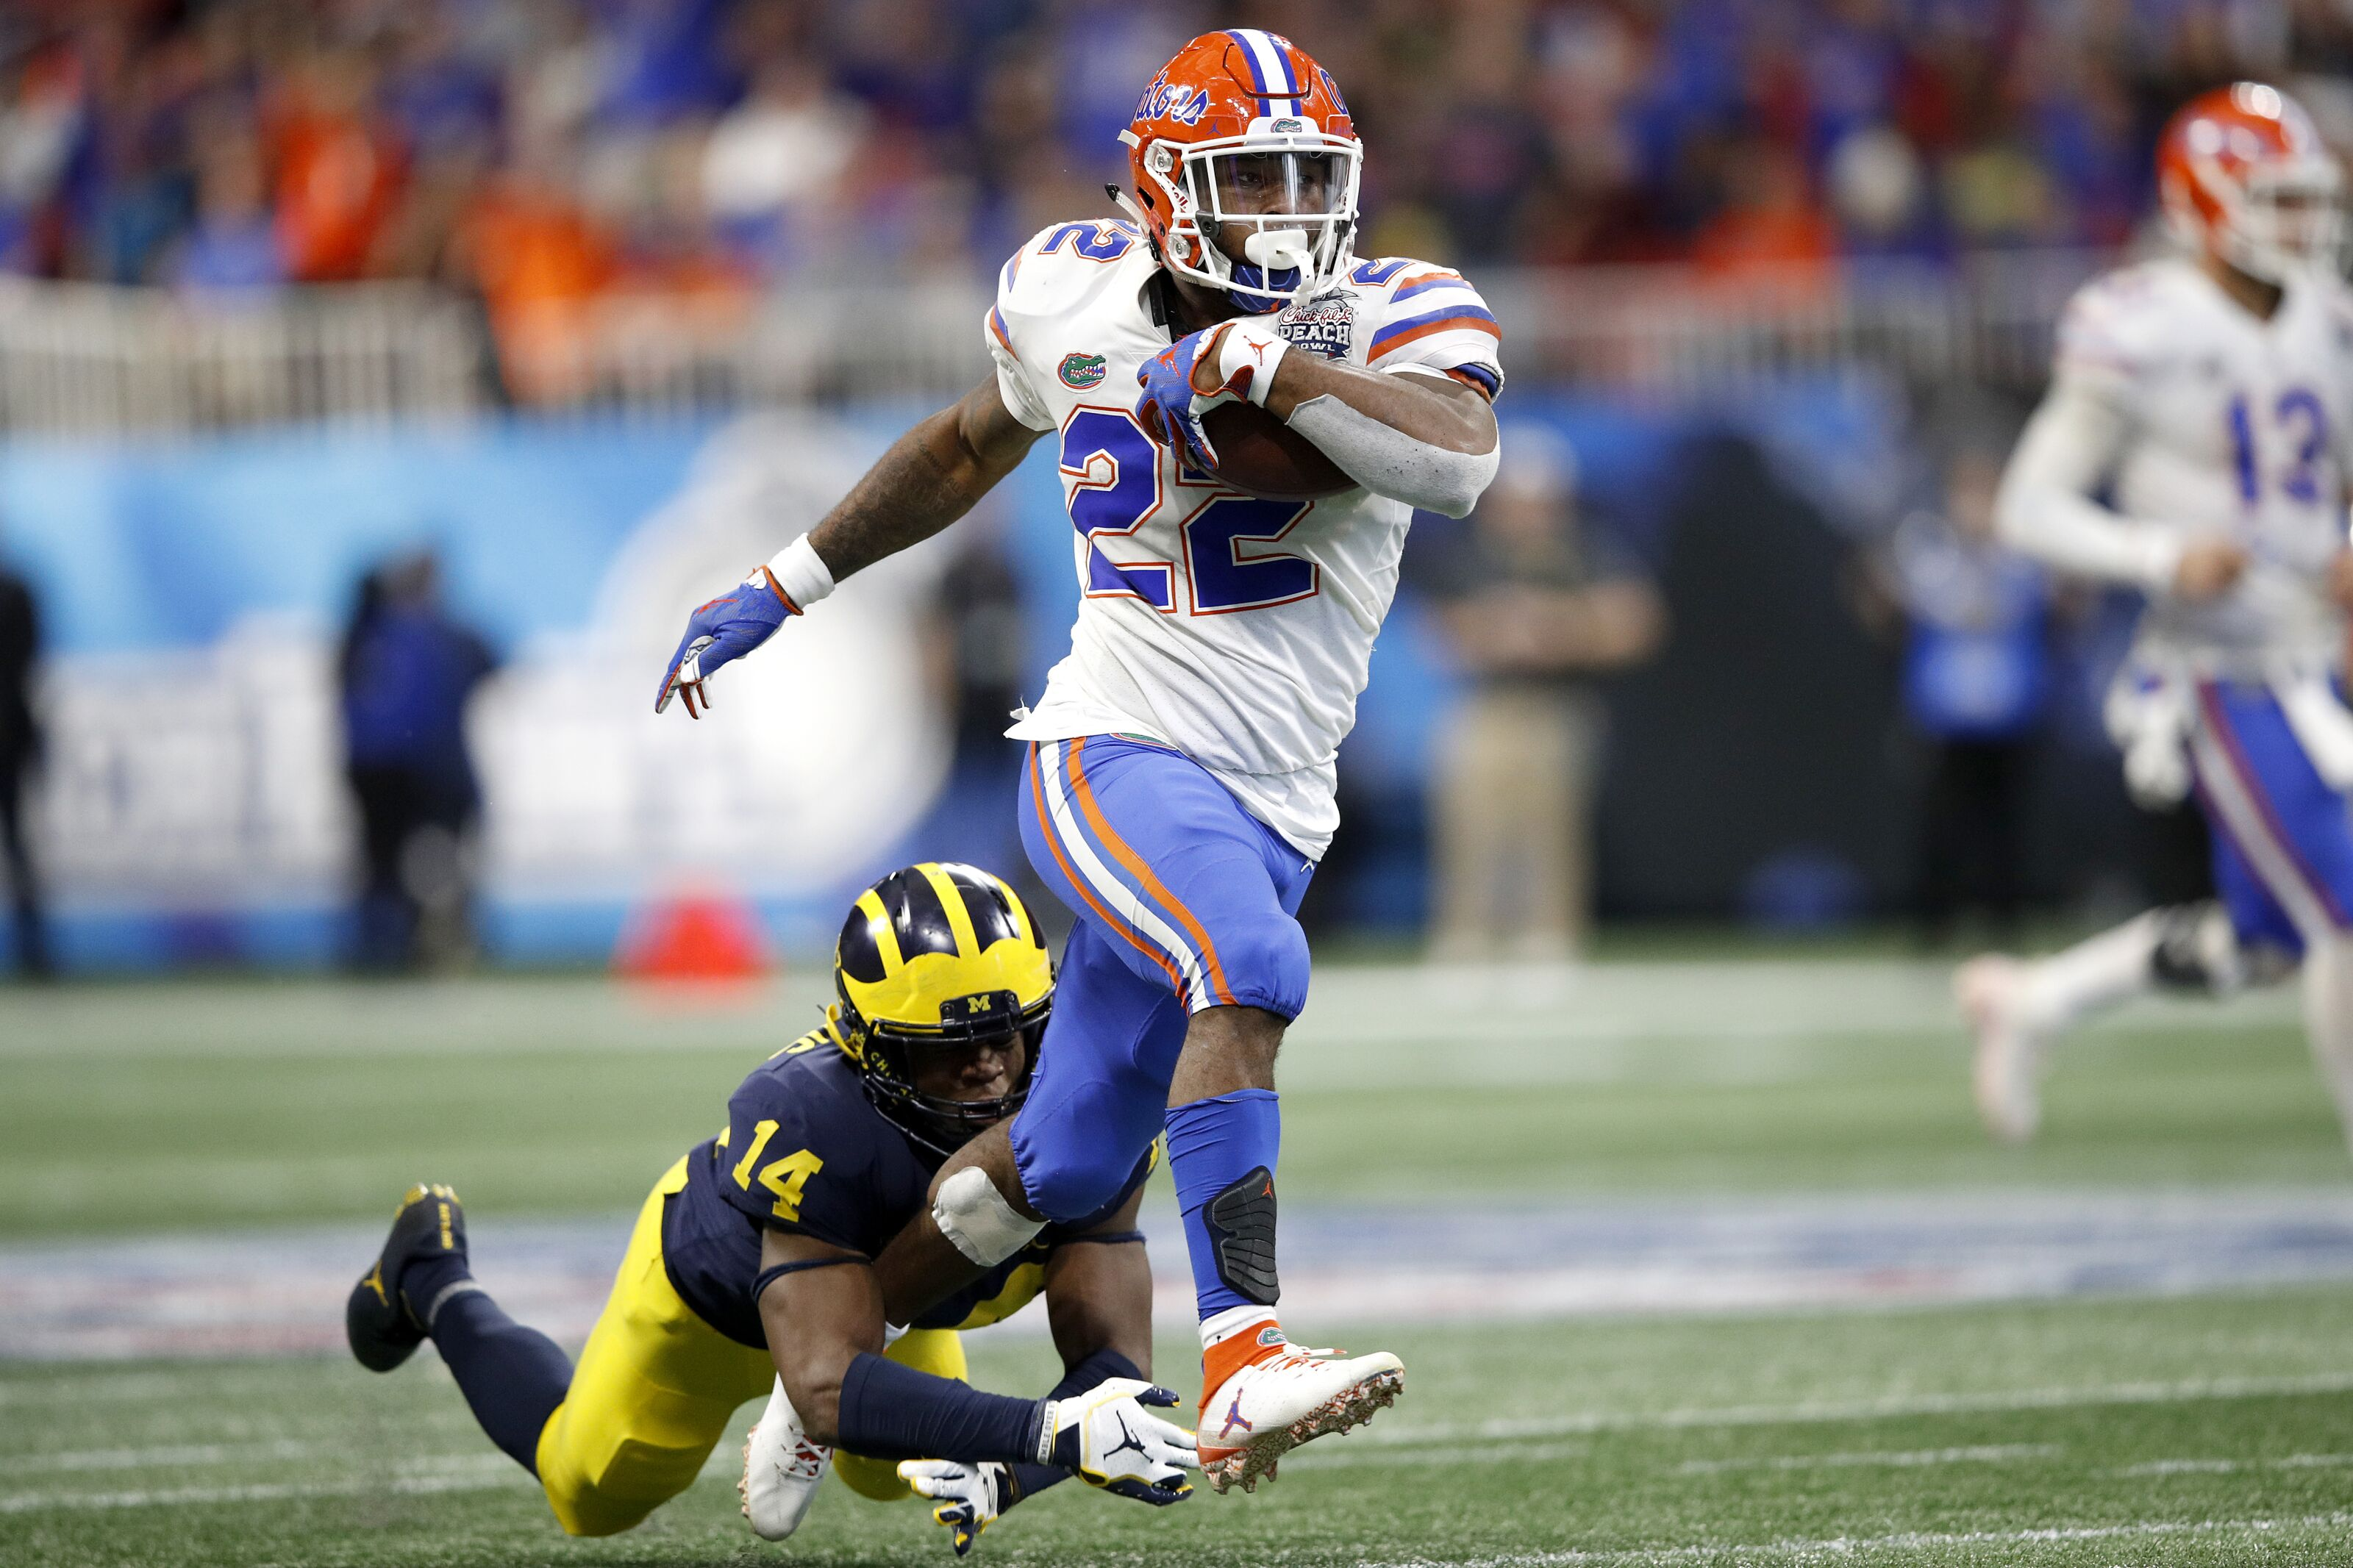 Florida football: 2019 underrated opponents – Miami